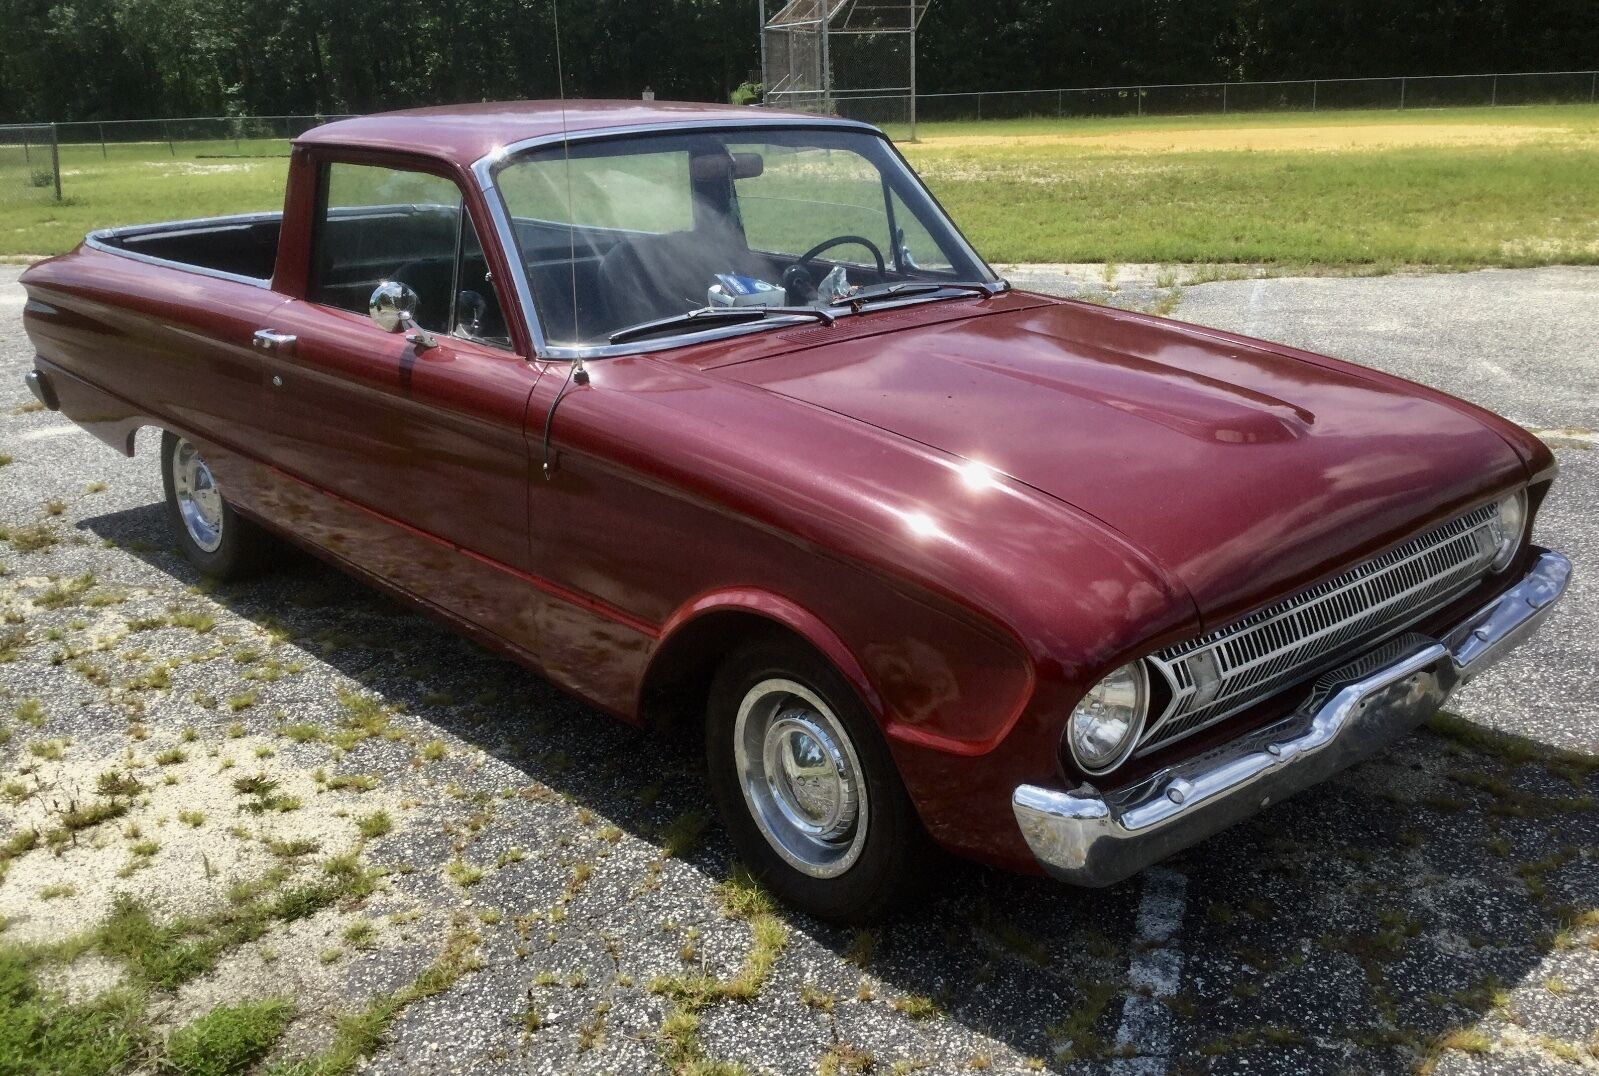 1960 Ford Ranchero Pickup 1960 Ford Falcon Rachero, good solid driver with 5 speed stick STARTS AT 1¢, NR!